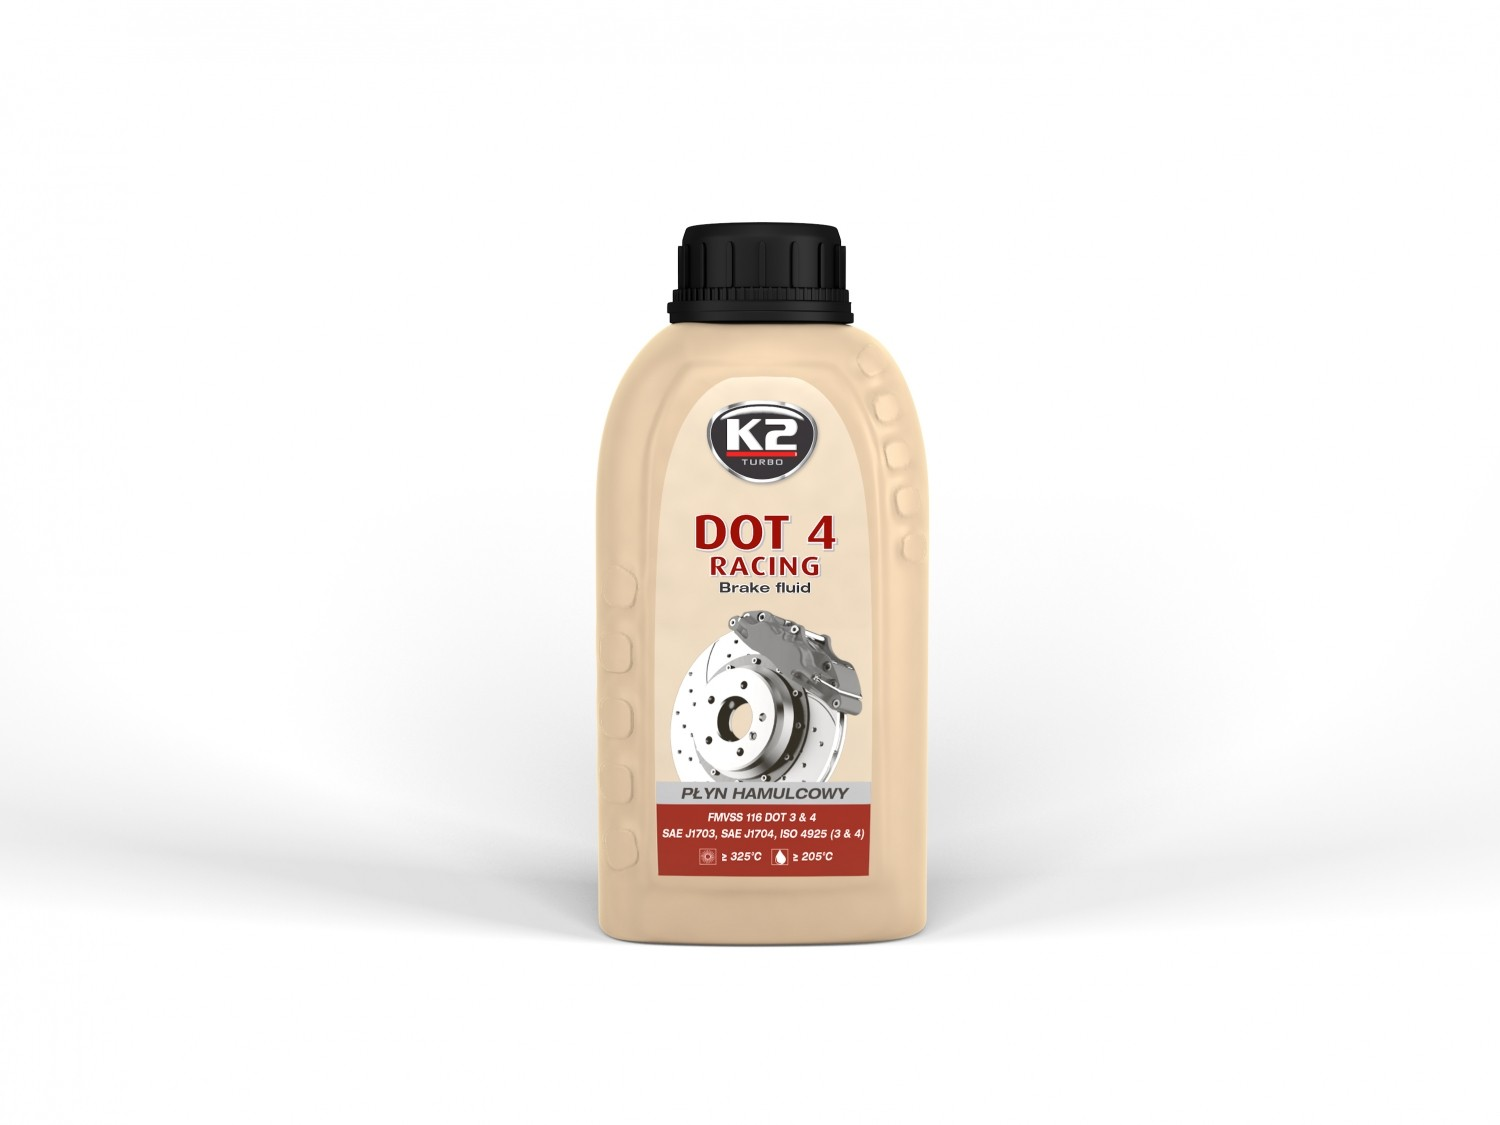 K2 DOT4 RACING 250 ML